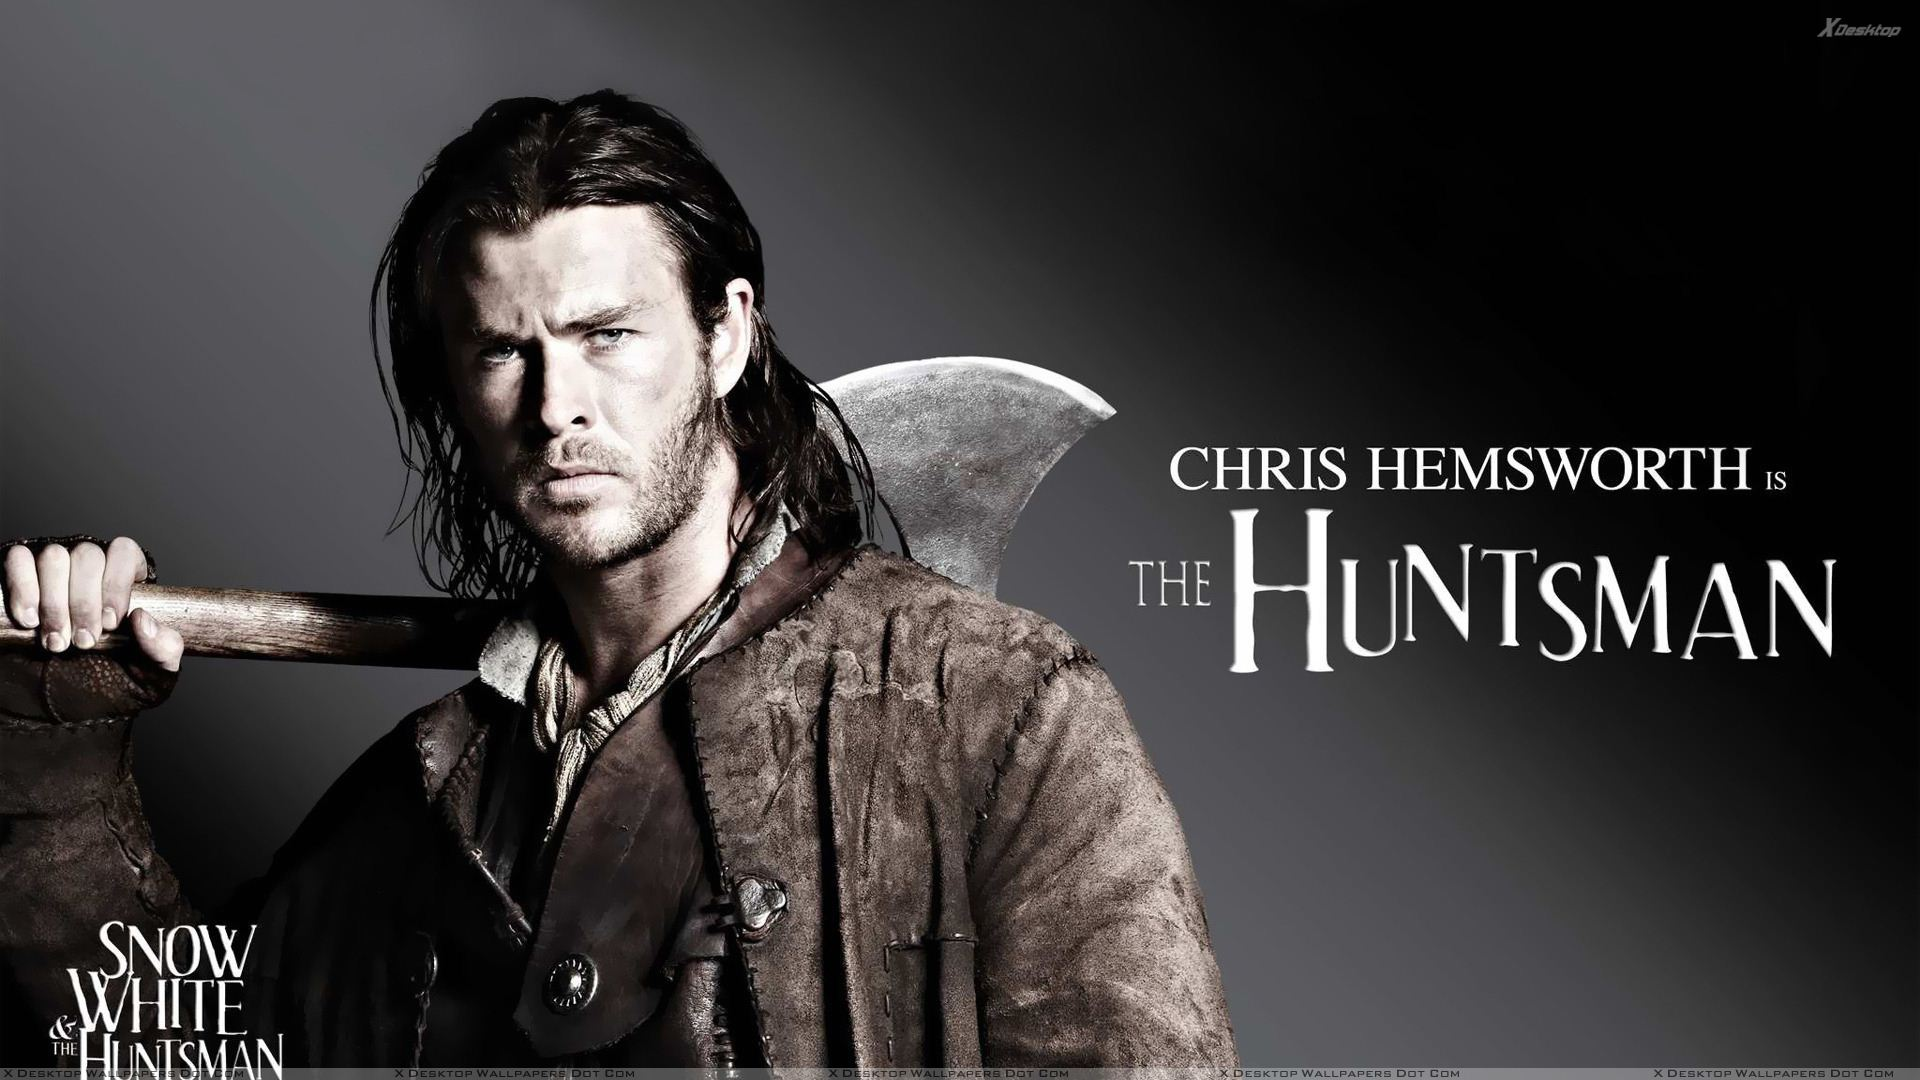 Chris Hemsworth Wallpapers Photos Images in HD 1920x1080